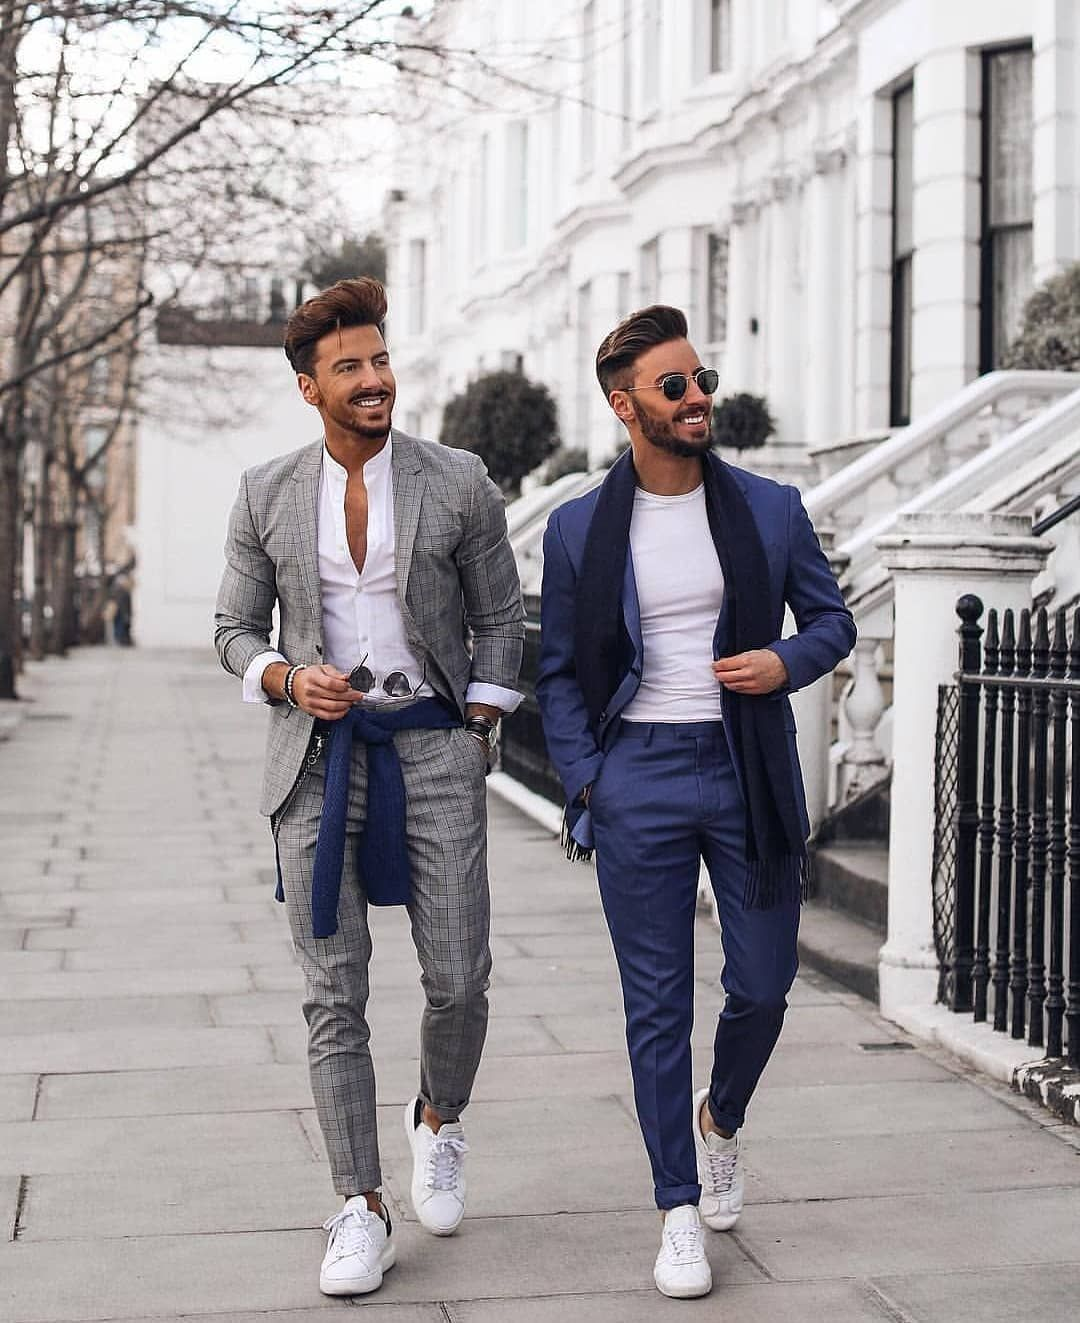 Zara Men On Instagram Left Or Right Stylish Streetfashion Fashionstyle Fashionista Streetfashion Mens Outfits Mens Casual Outfits Stylish Mens Outfits